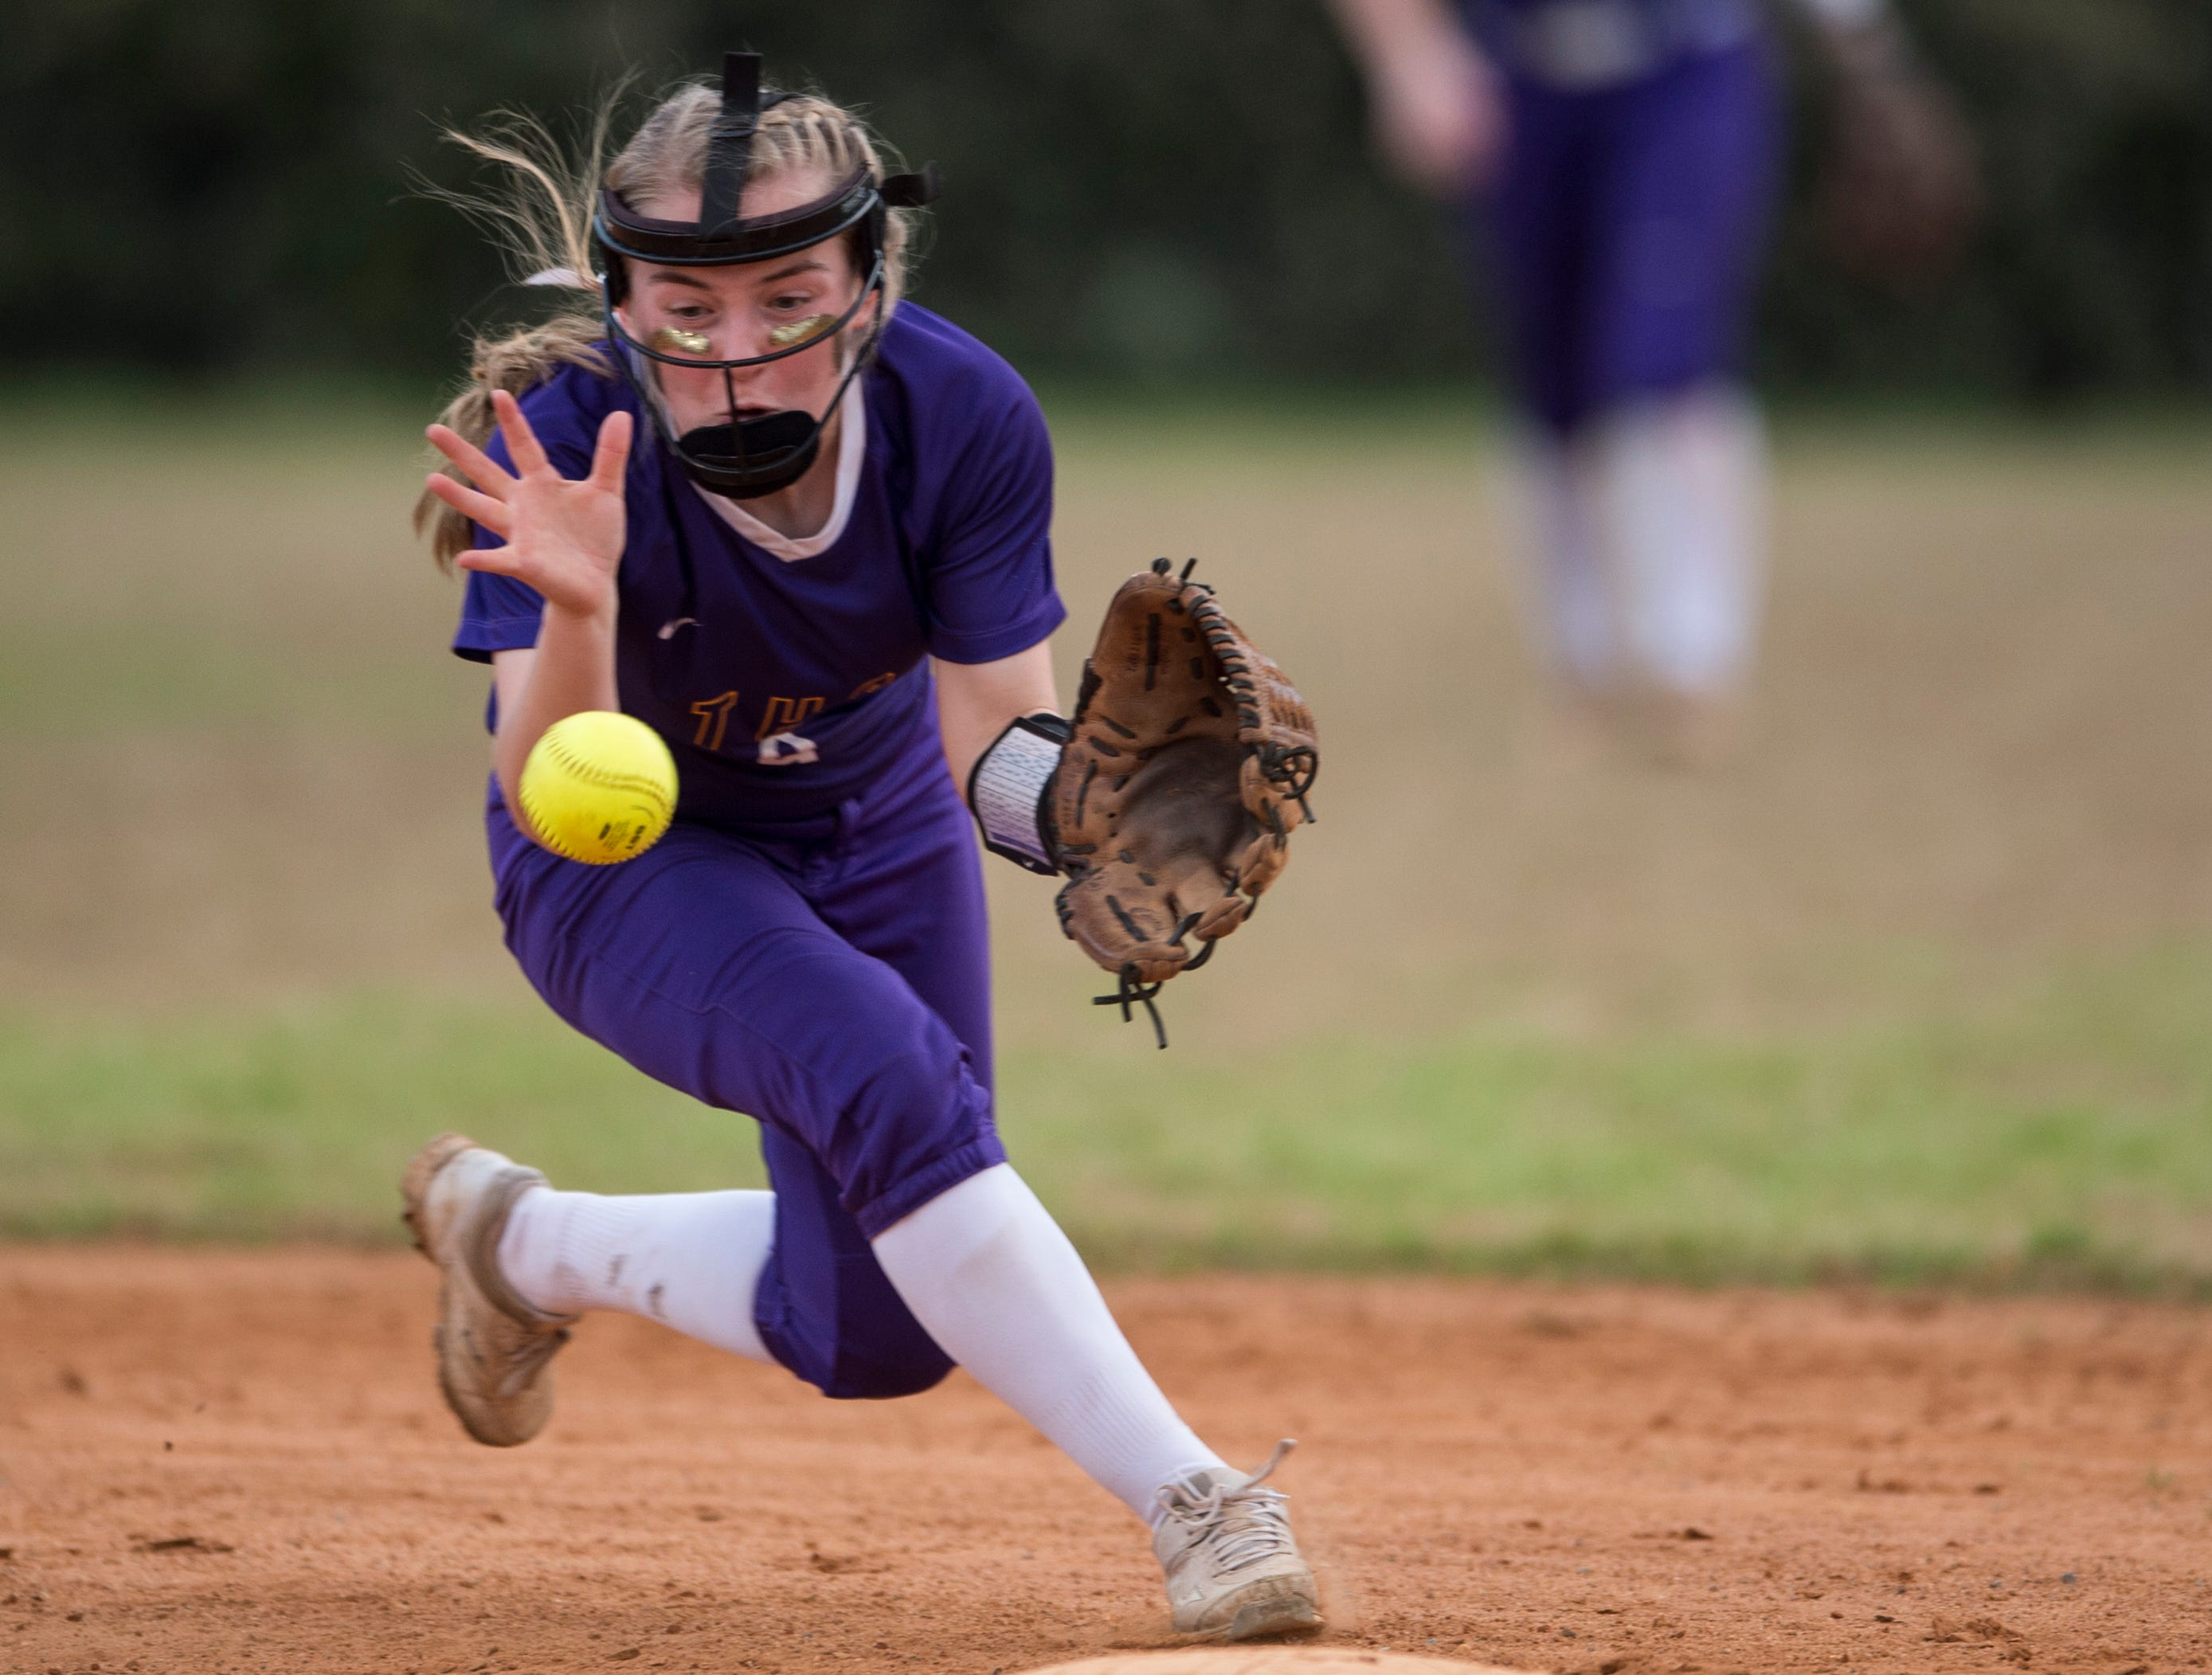 Tallassee's Alivia Haynes (9) fields the ball near second base at Thompson Park in Montgomery, Ala., on Thursday, March 14, 2019. Tallassee defeated Brew Tech 7-0.